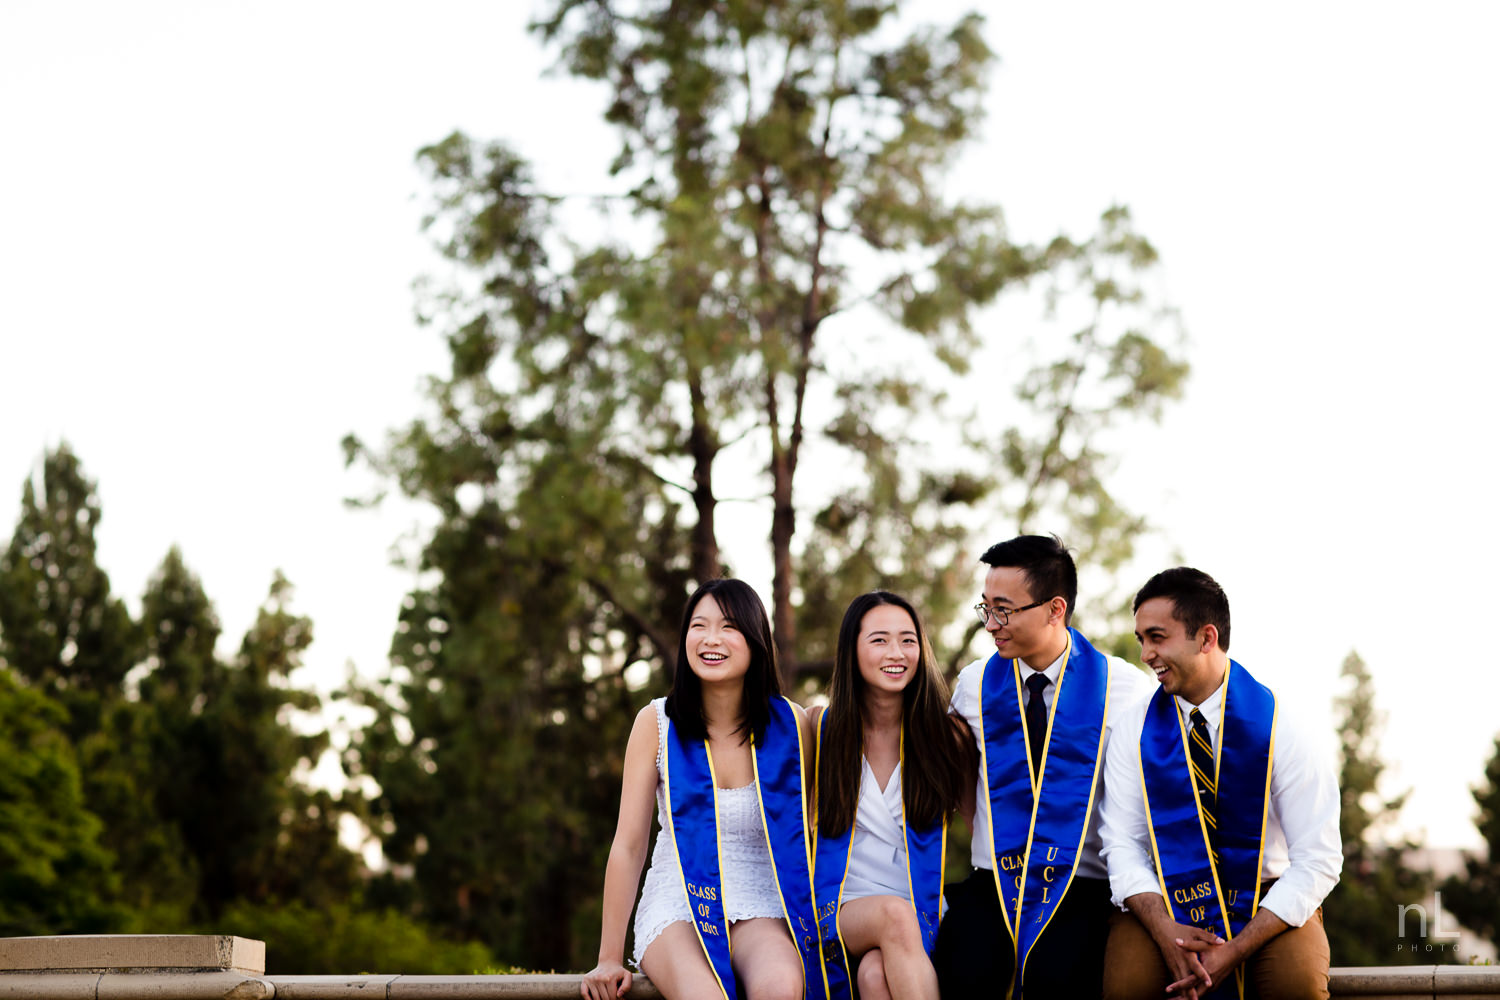 los angeles ucla senior graduation group portrait of best friends in white laughing while sitting on royce quad balcony